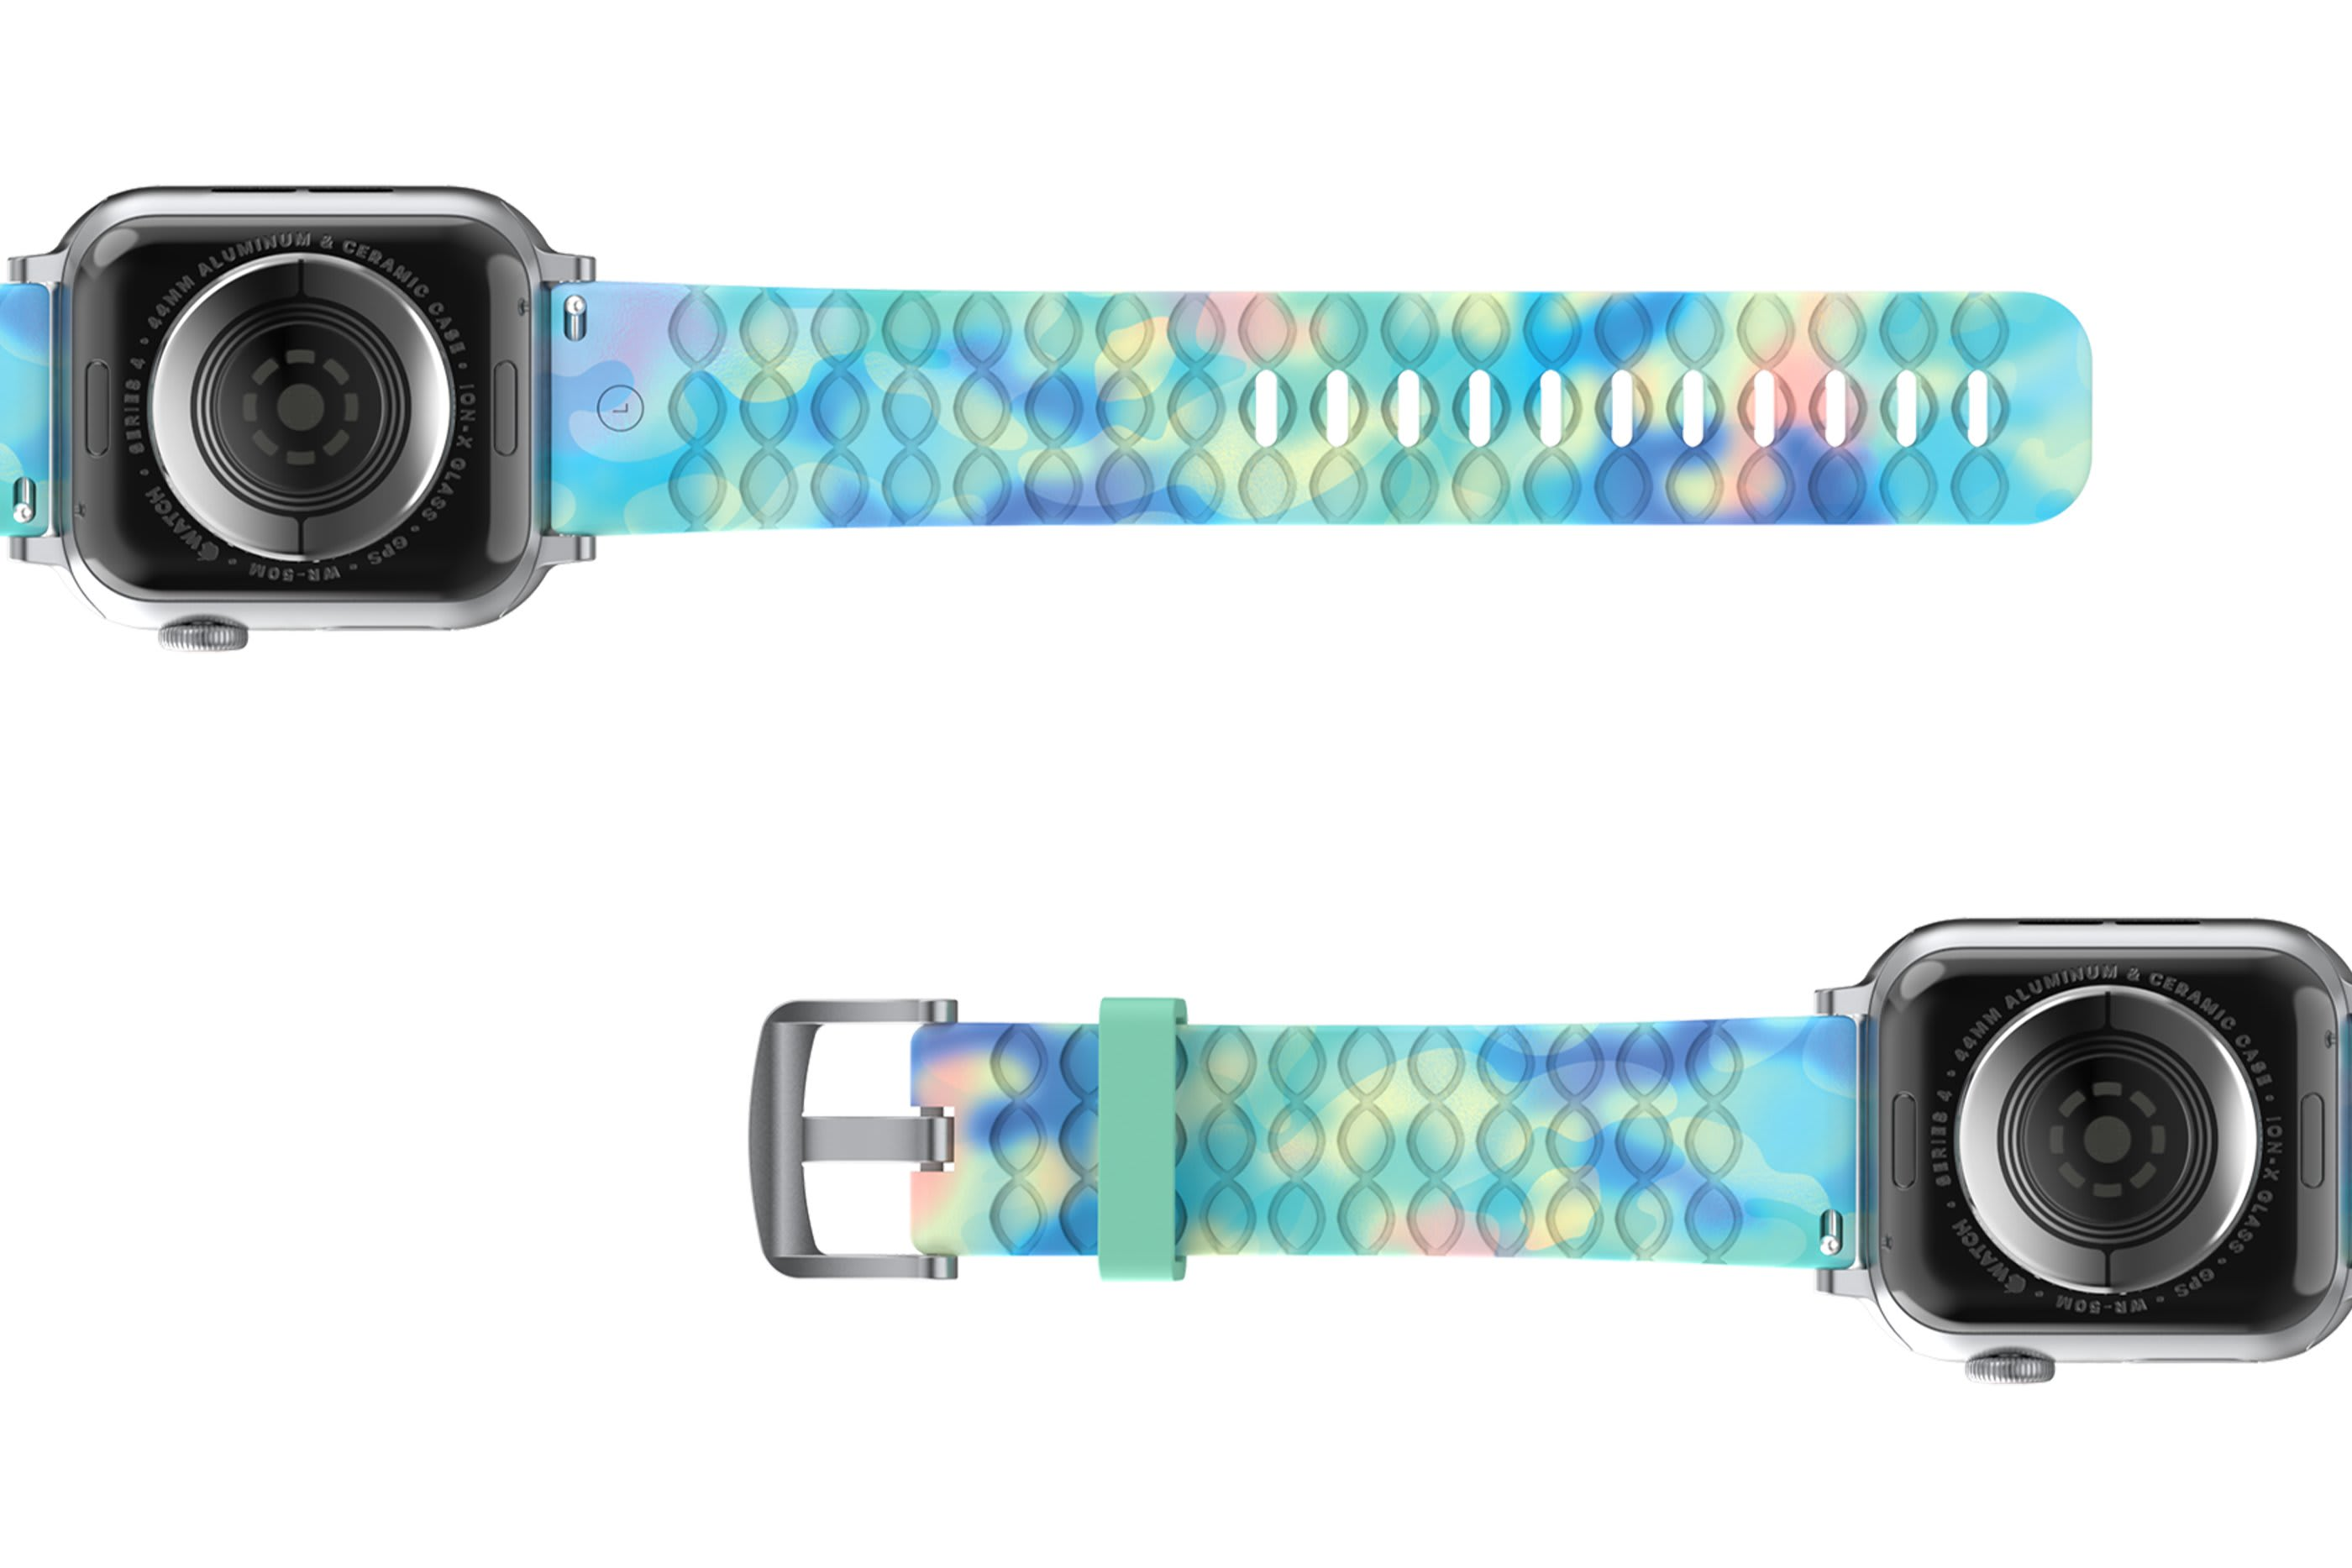 Opal - Apple   watch band with silver hardware viewed bottom up